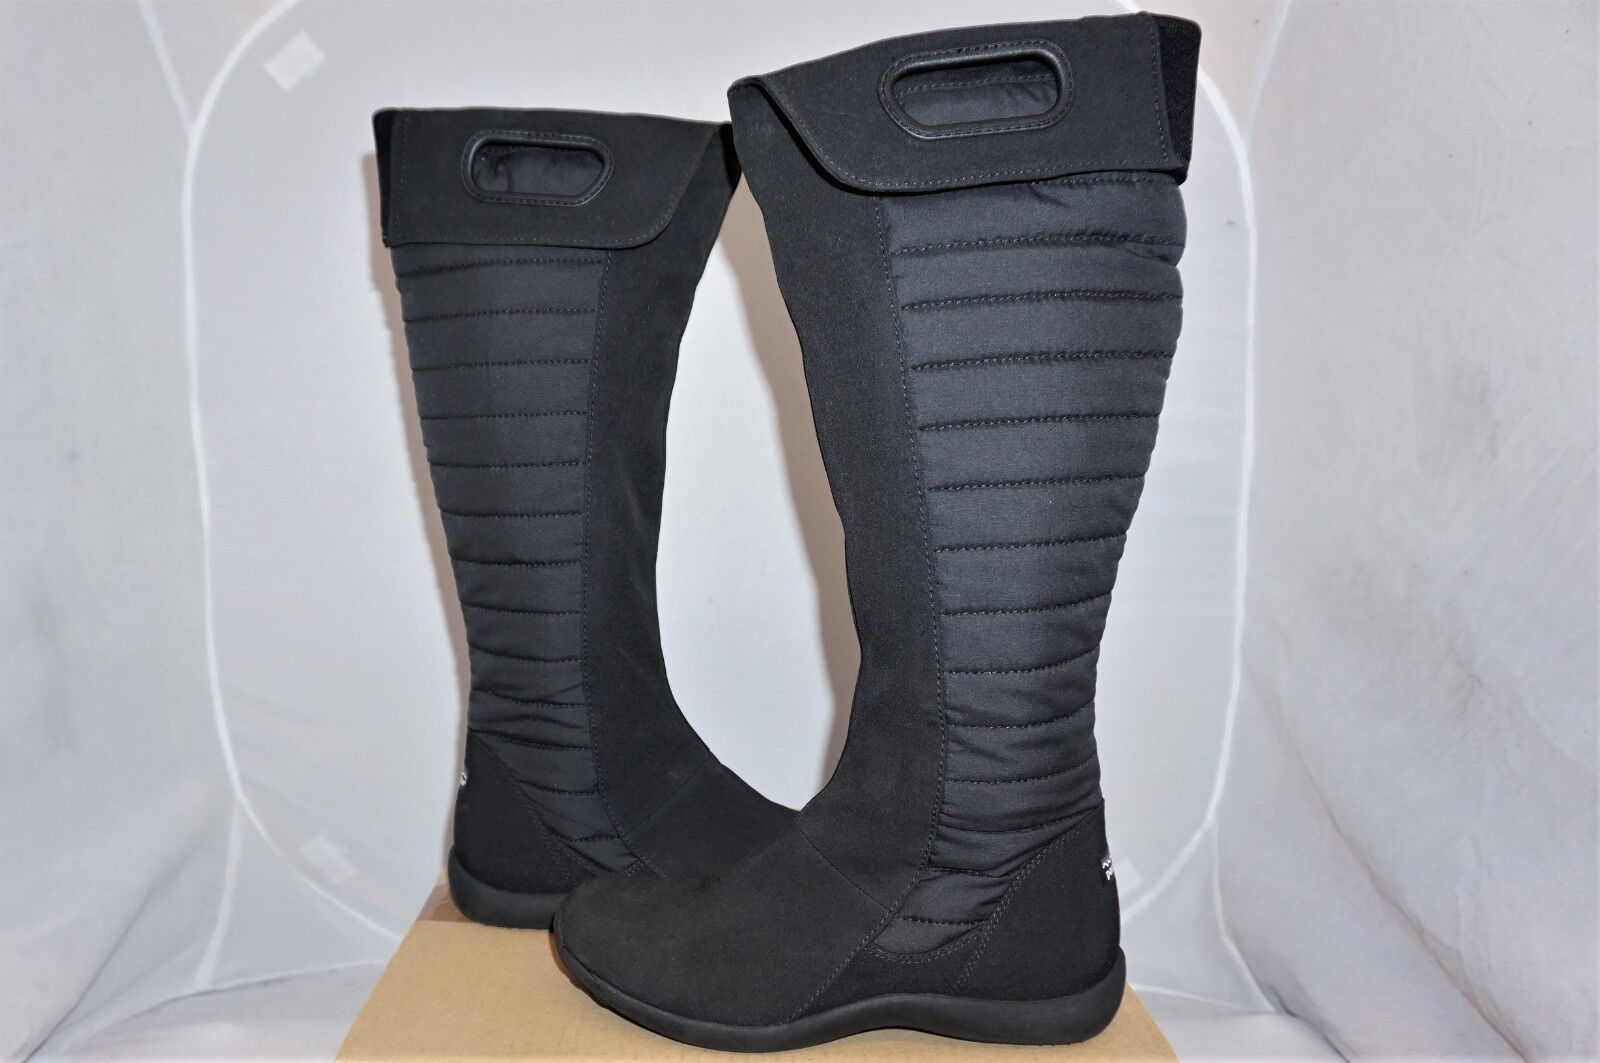 Patagonia Fiona UK 4 EU 37 US 6 Womens High Boots Winter Boots NEW   2881